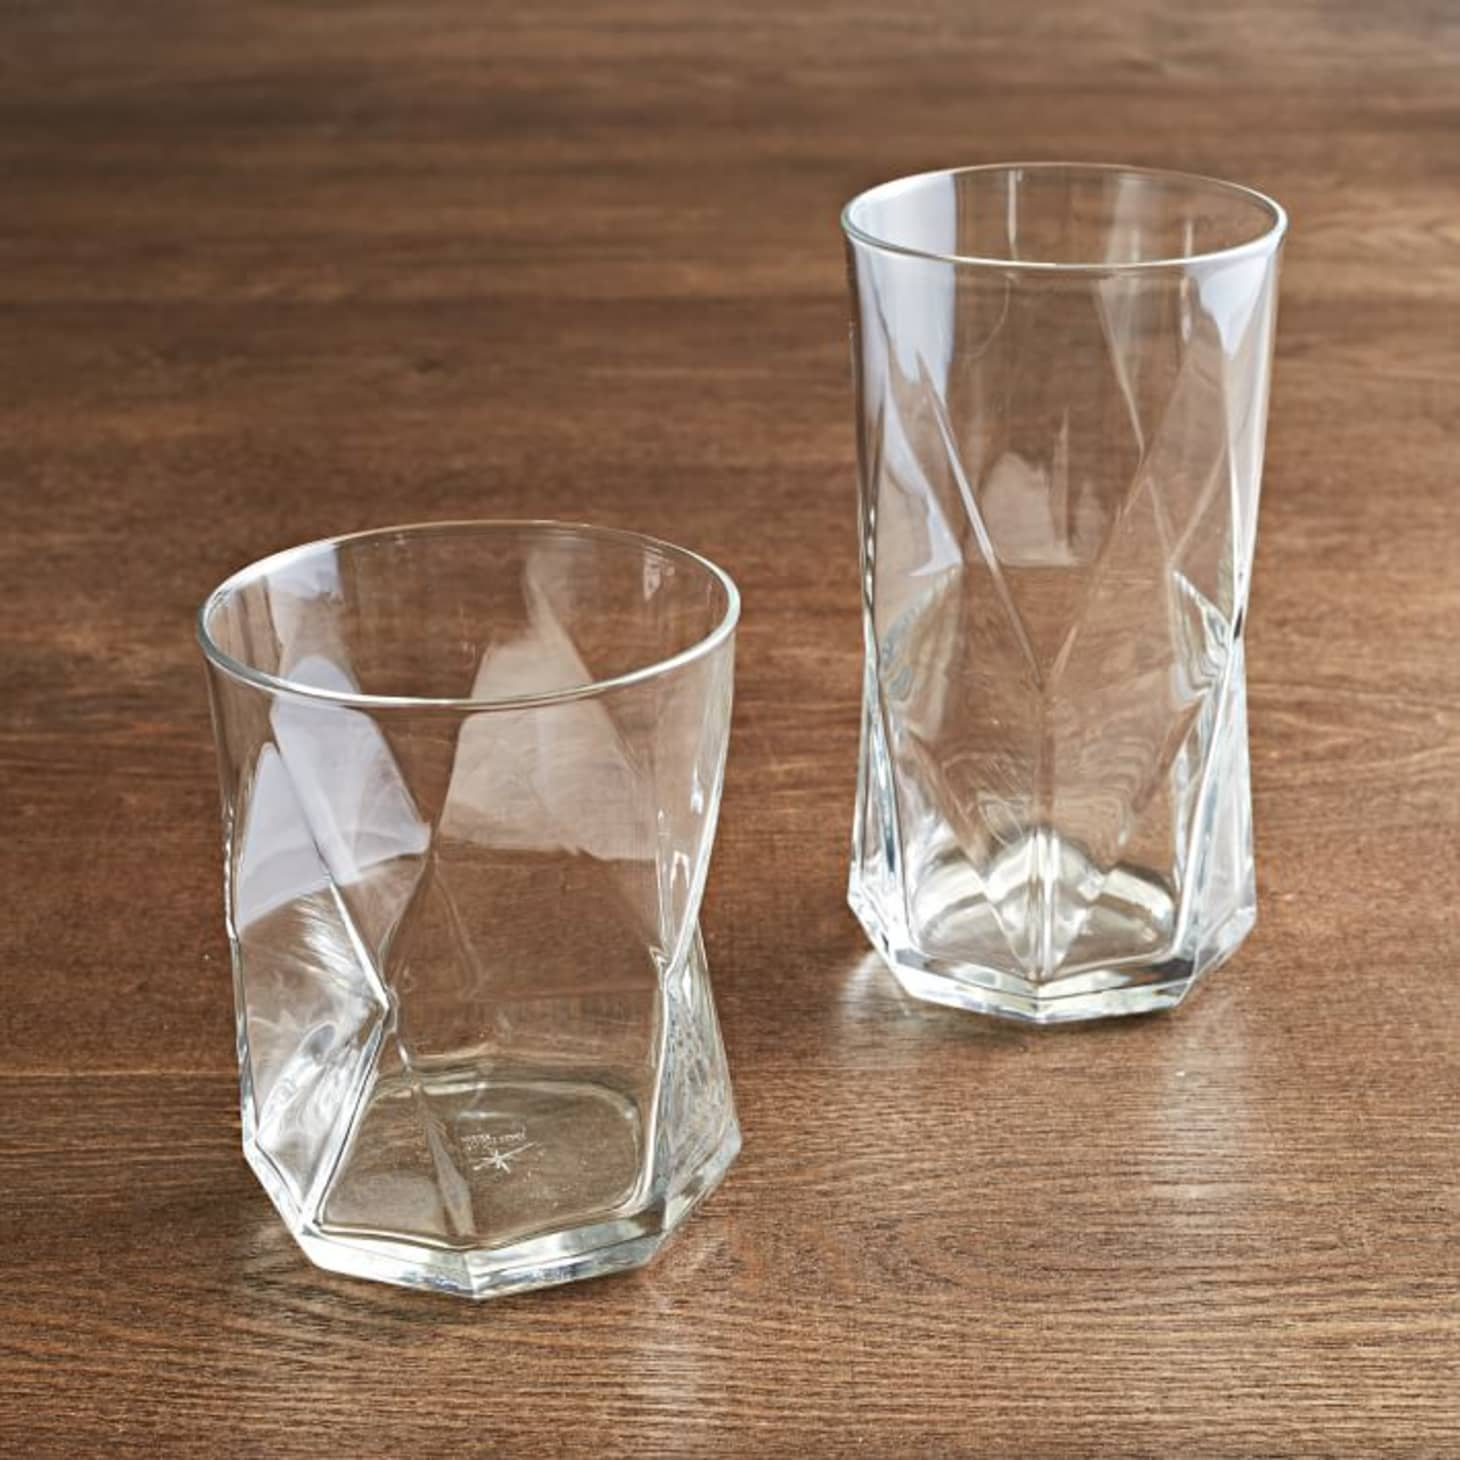 6bdac0fac36 Best Drinking Glasses - Water Glasses For Everyday Use | Apartment ...